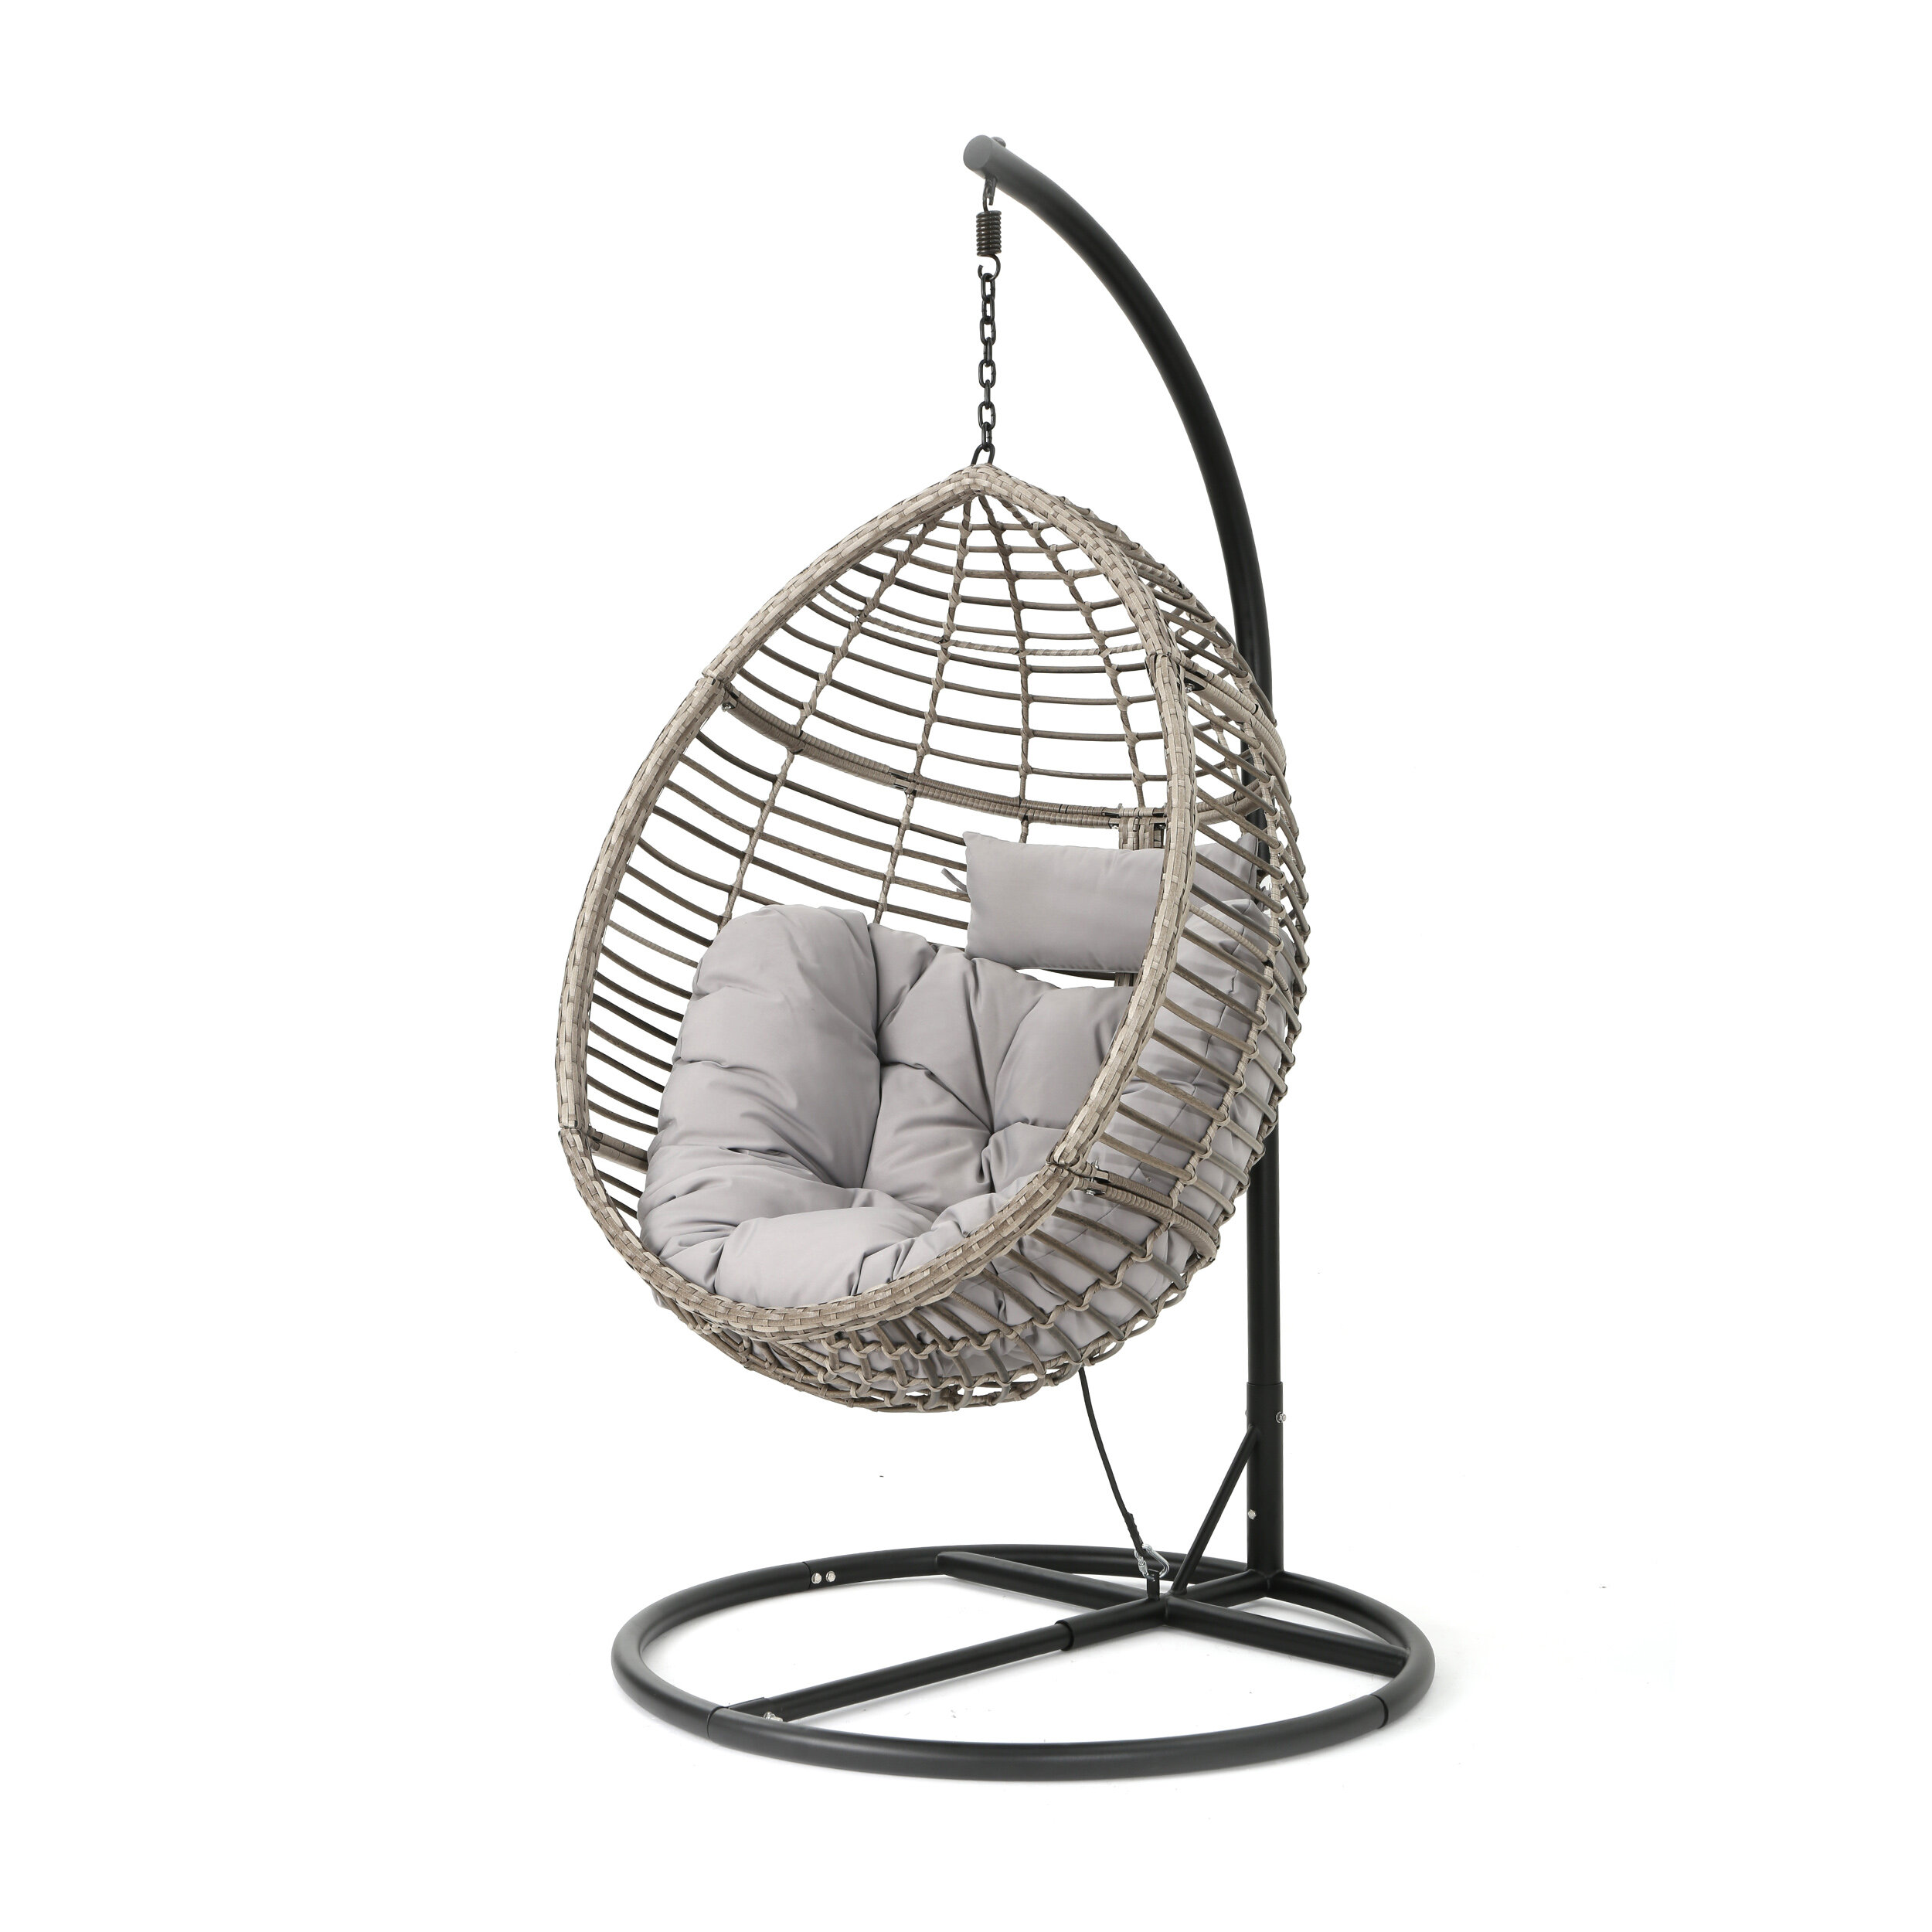 Weller Outdoor Wicker Basket Swing Chair With Stand Reviews Joss